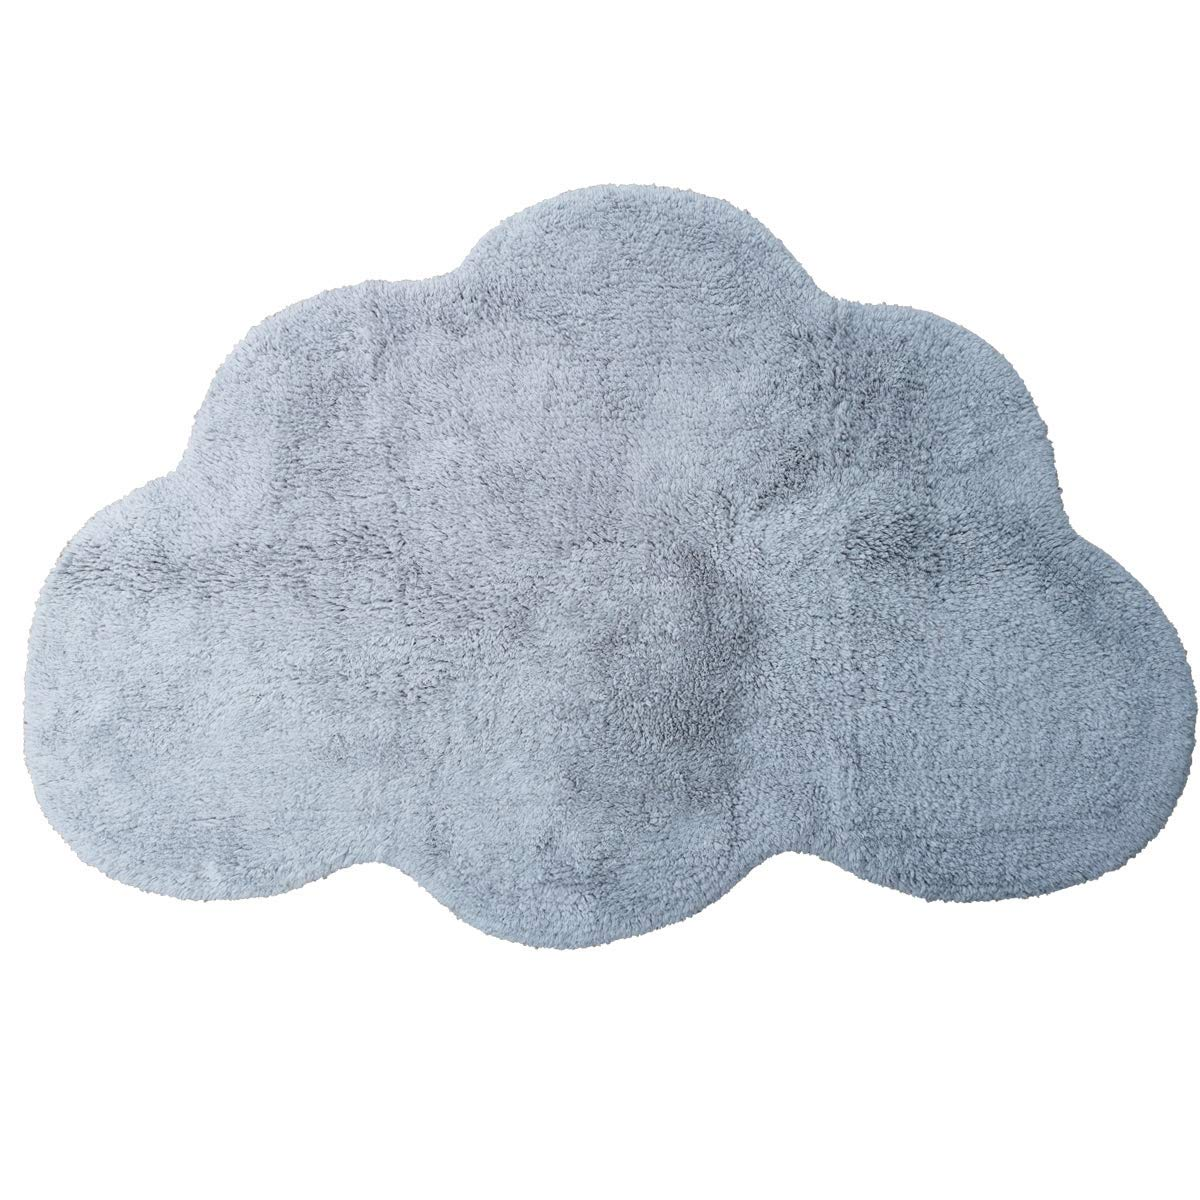 Area Rugs for Kids Cloud Shape Baby Crawling Rugs Carpet Room Warm Soft 100/% Cotton Luxury Plush Handmade Knitted Nursery Decoration Rugs 39.5 INCH25.5 INCH Russian Blue